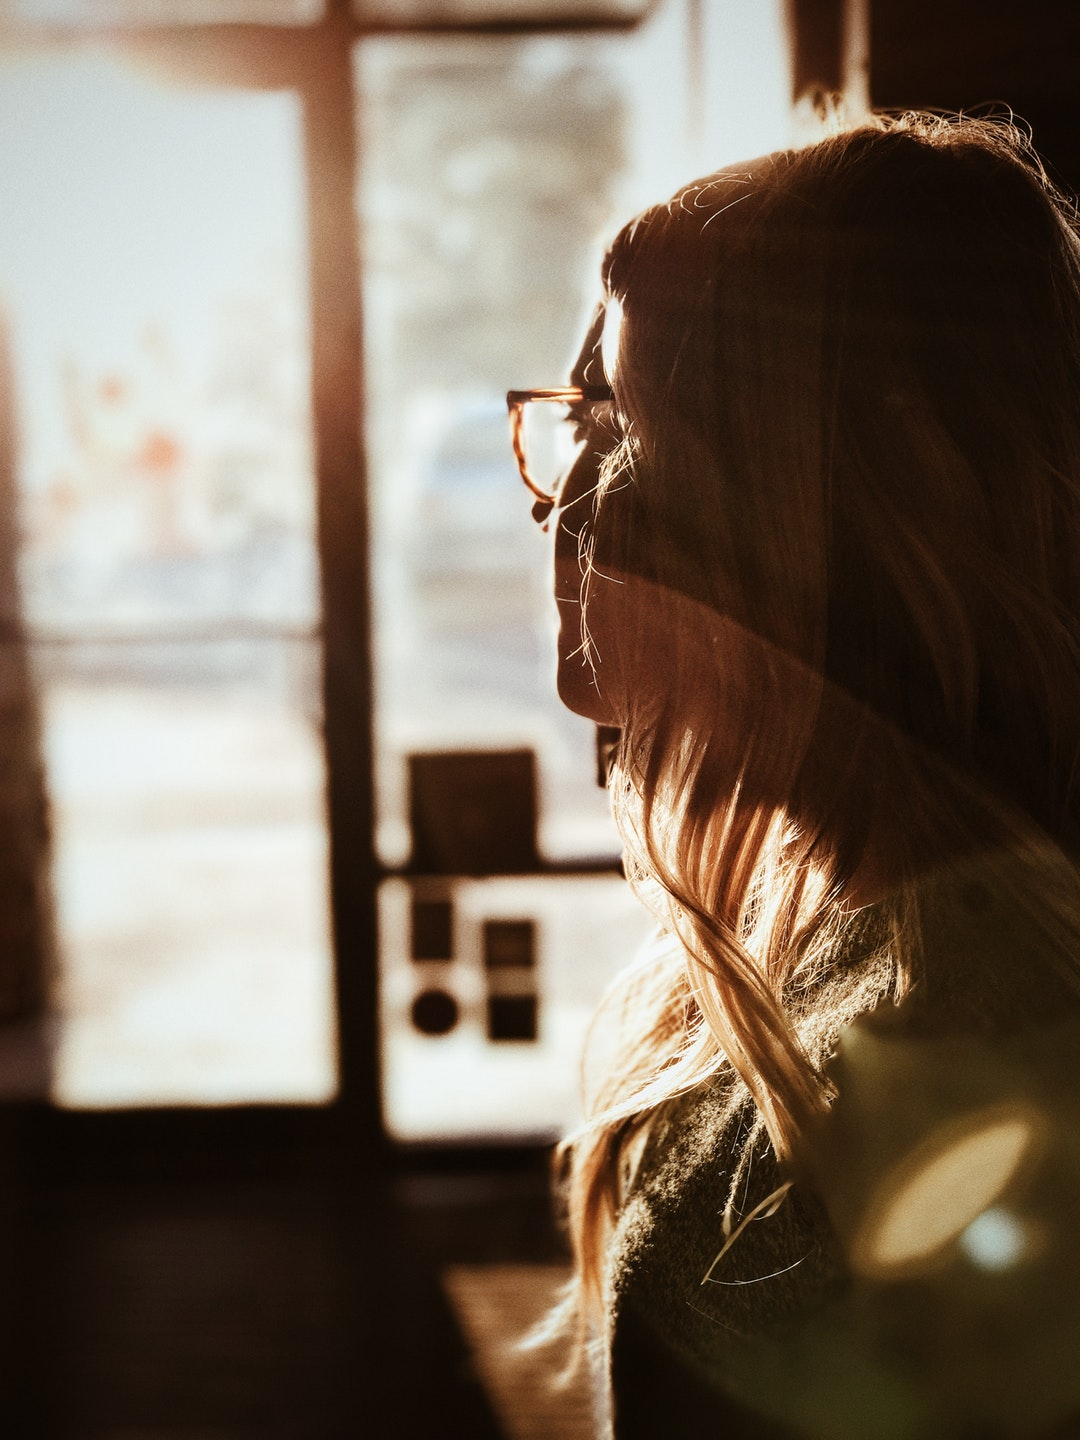 A blonde woman in glasses longingly looking at the window